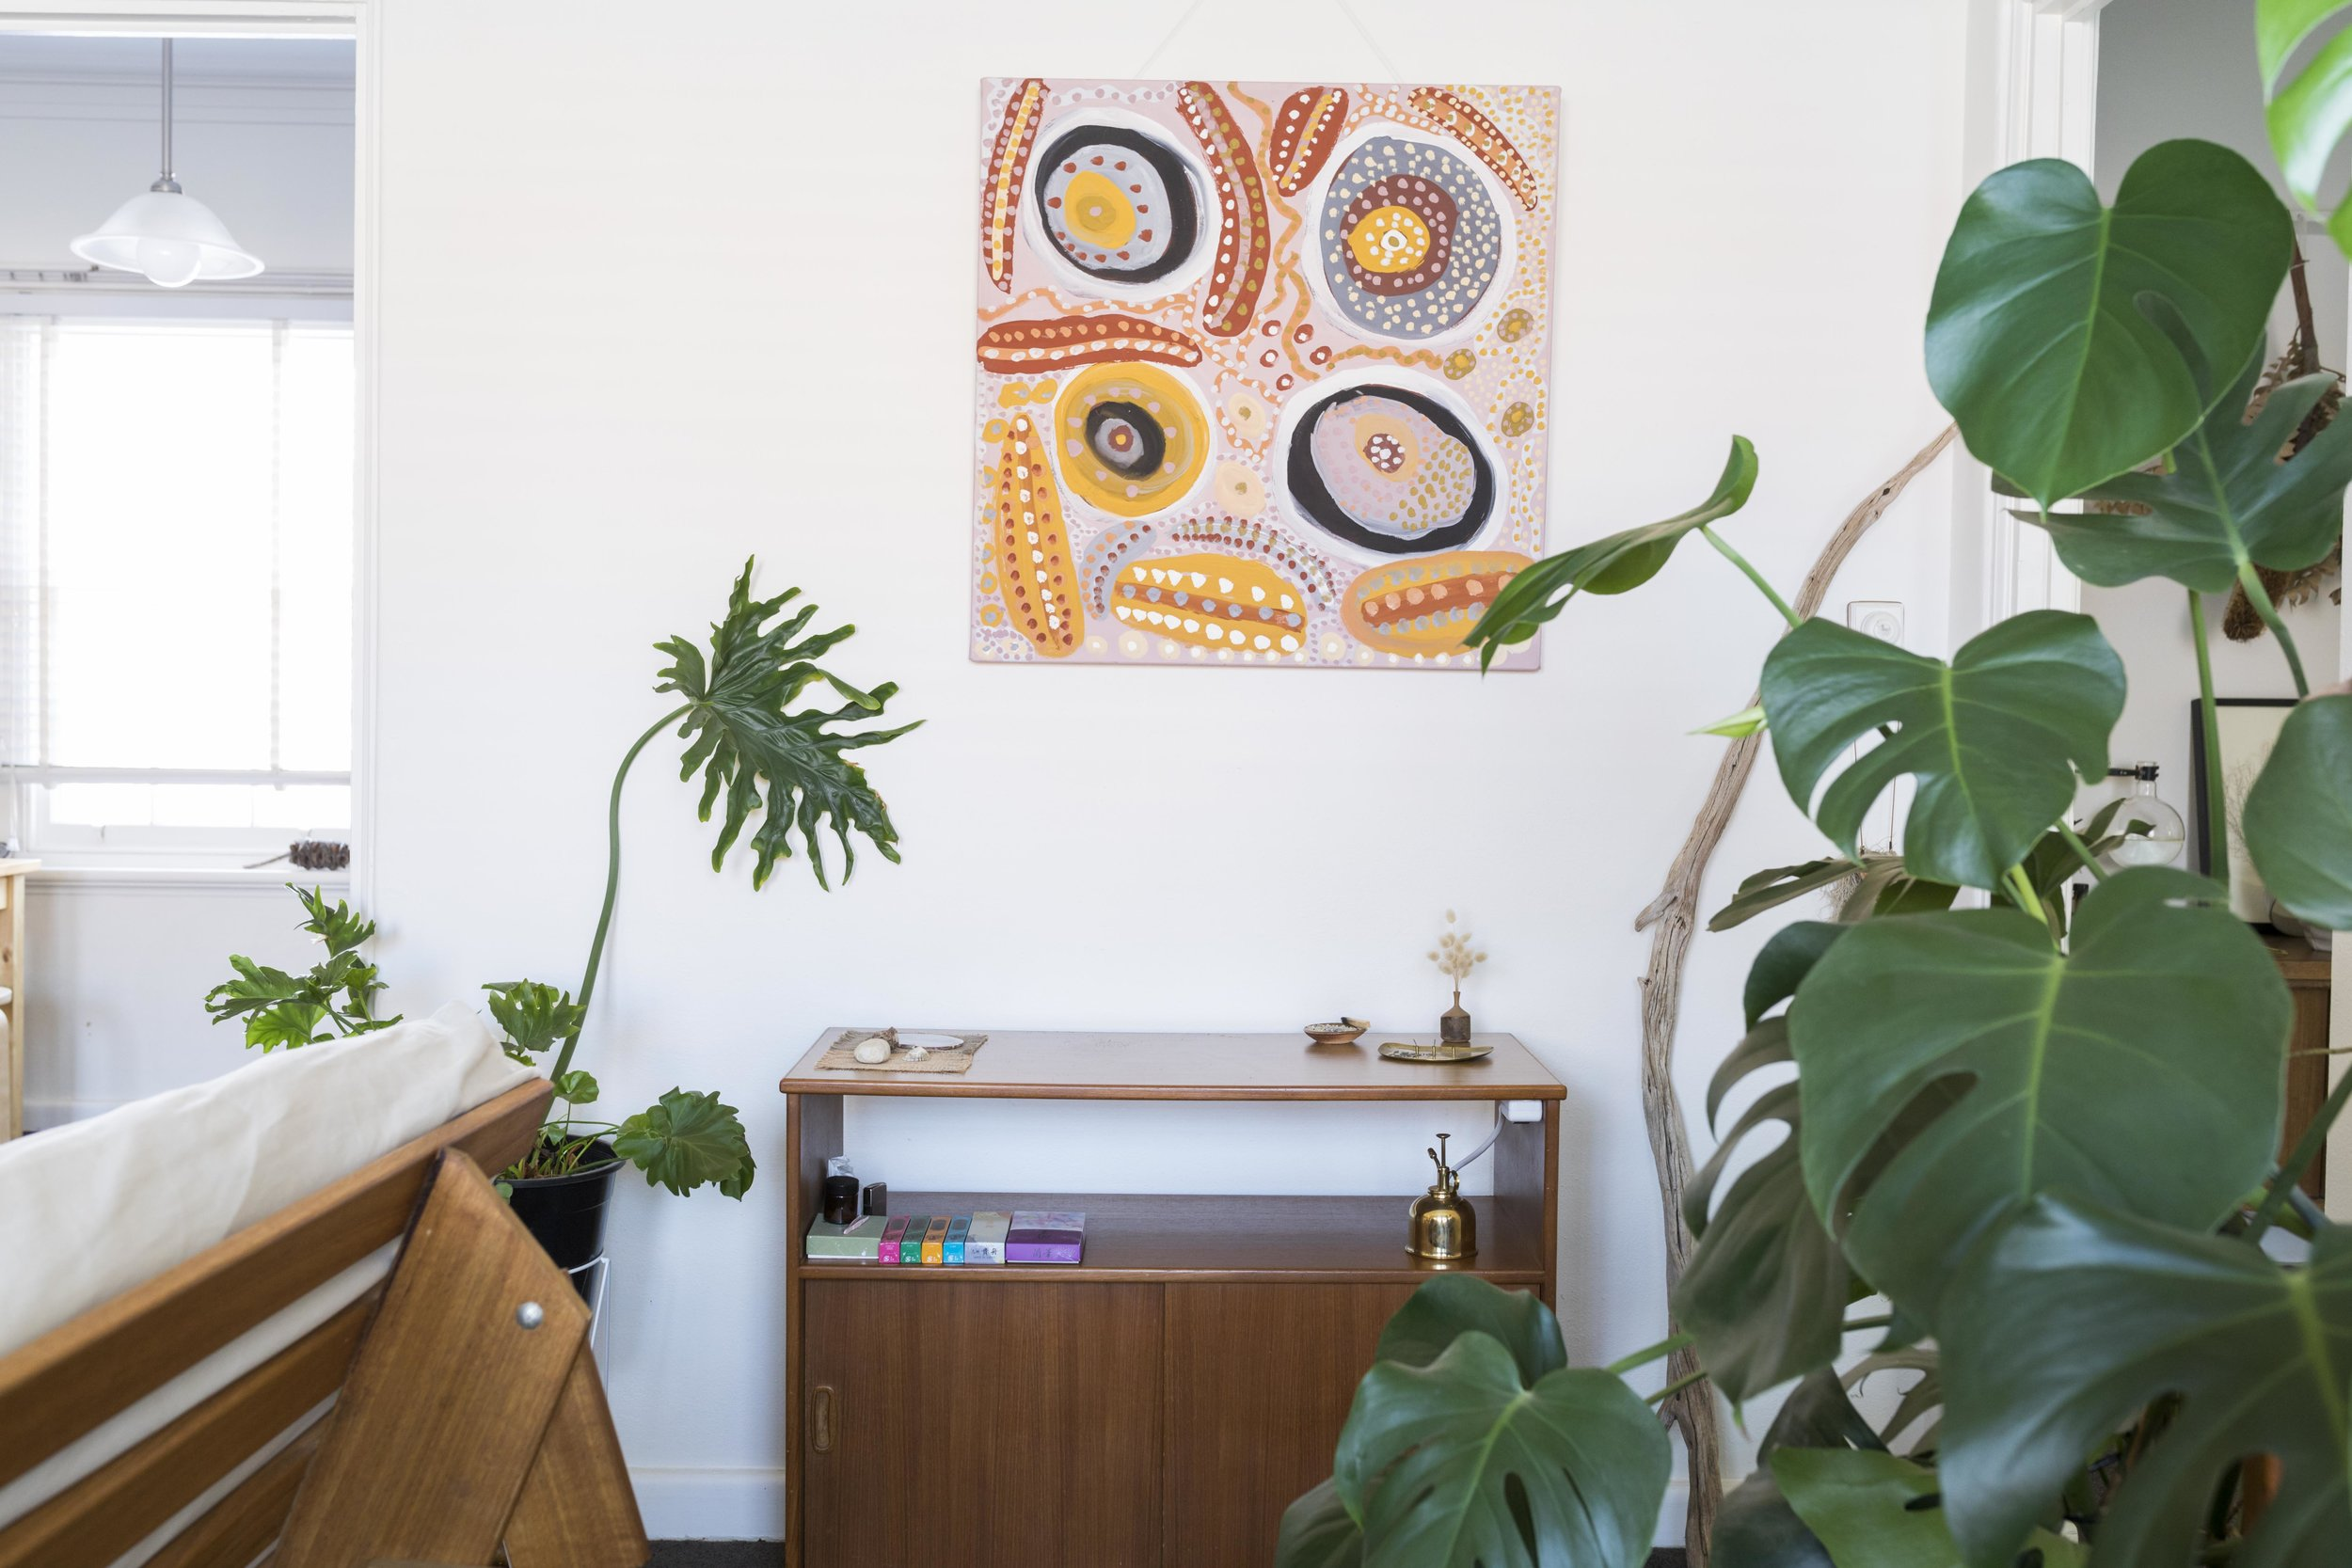 Belinda Evans' apartment in Brighton, Melbourne. Photo by Dan Soderstrom for Rented Space